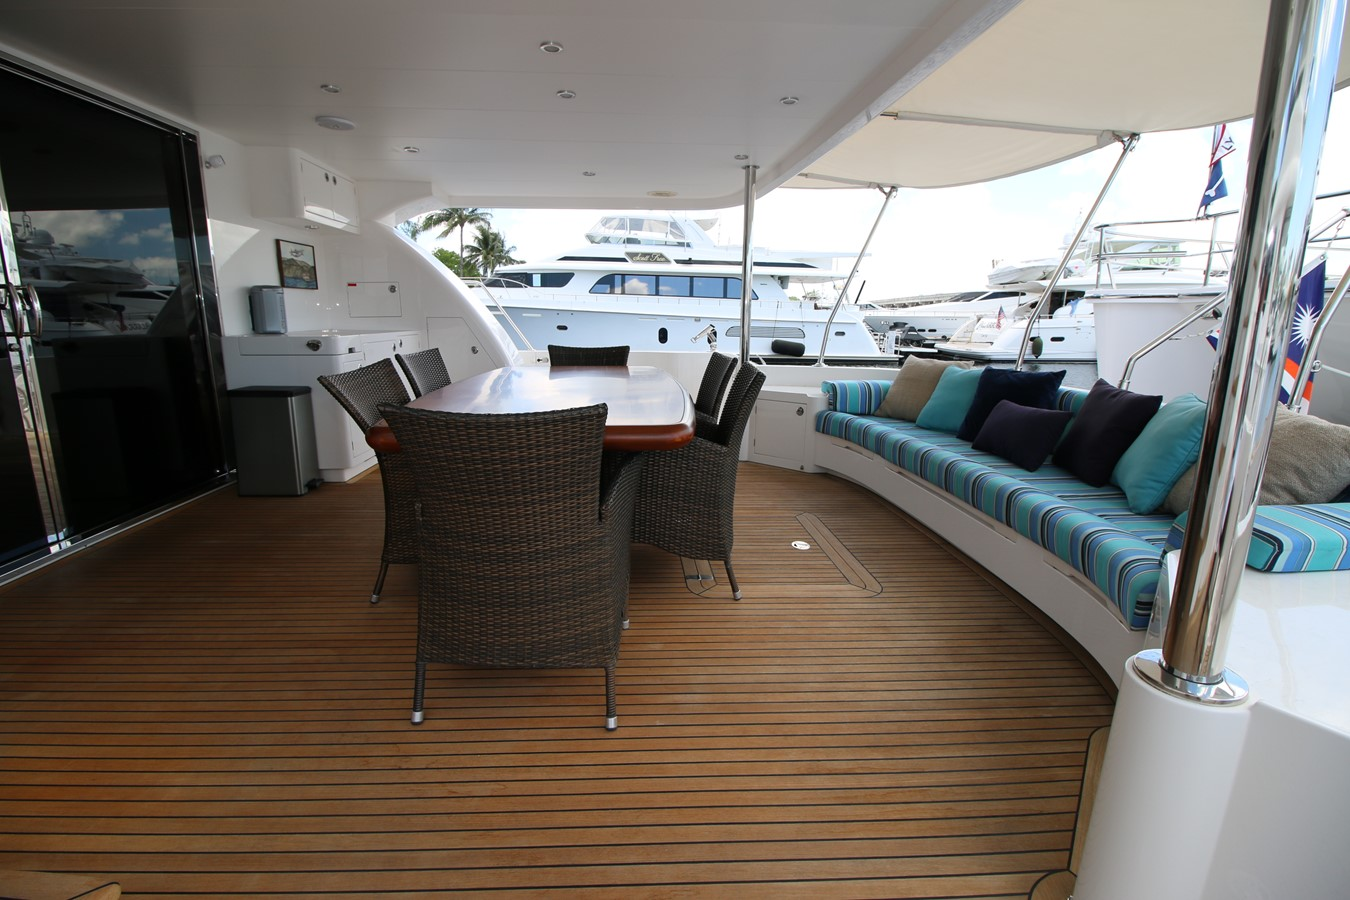 AFT DECK 2014 HORIZON PC60 SKYLOUNGE Catamaran 2547227